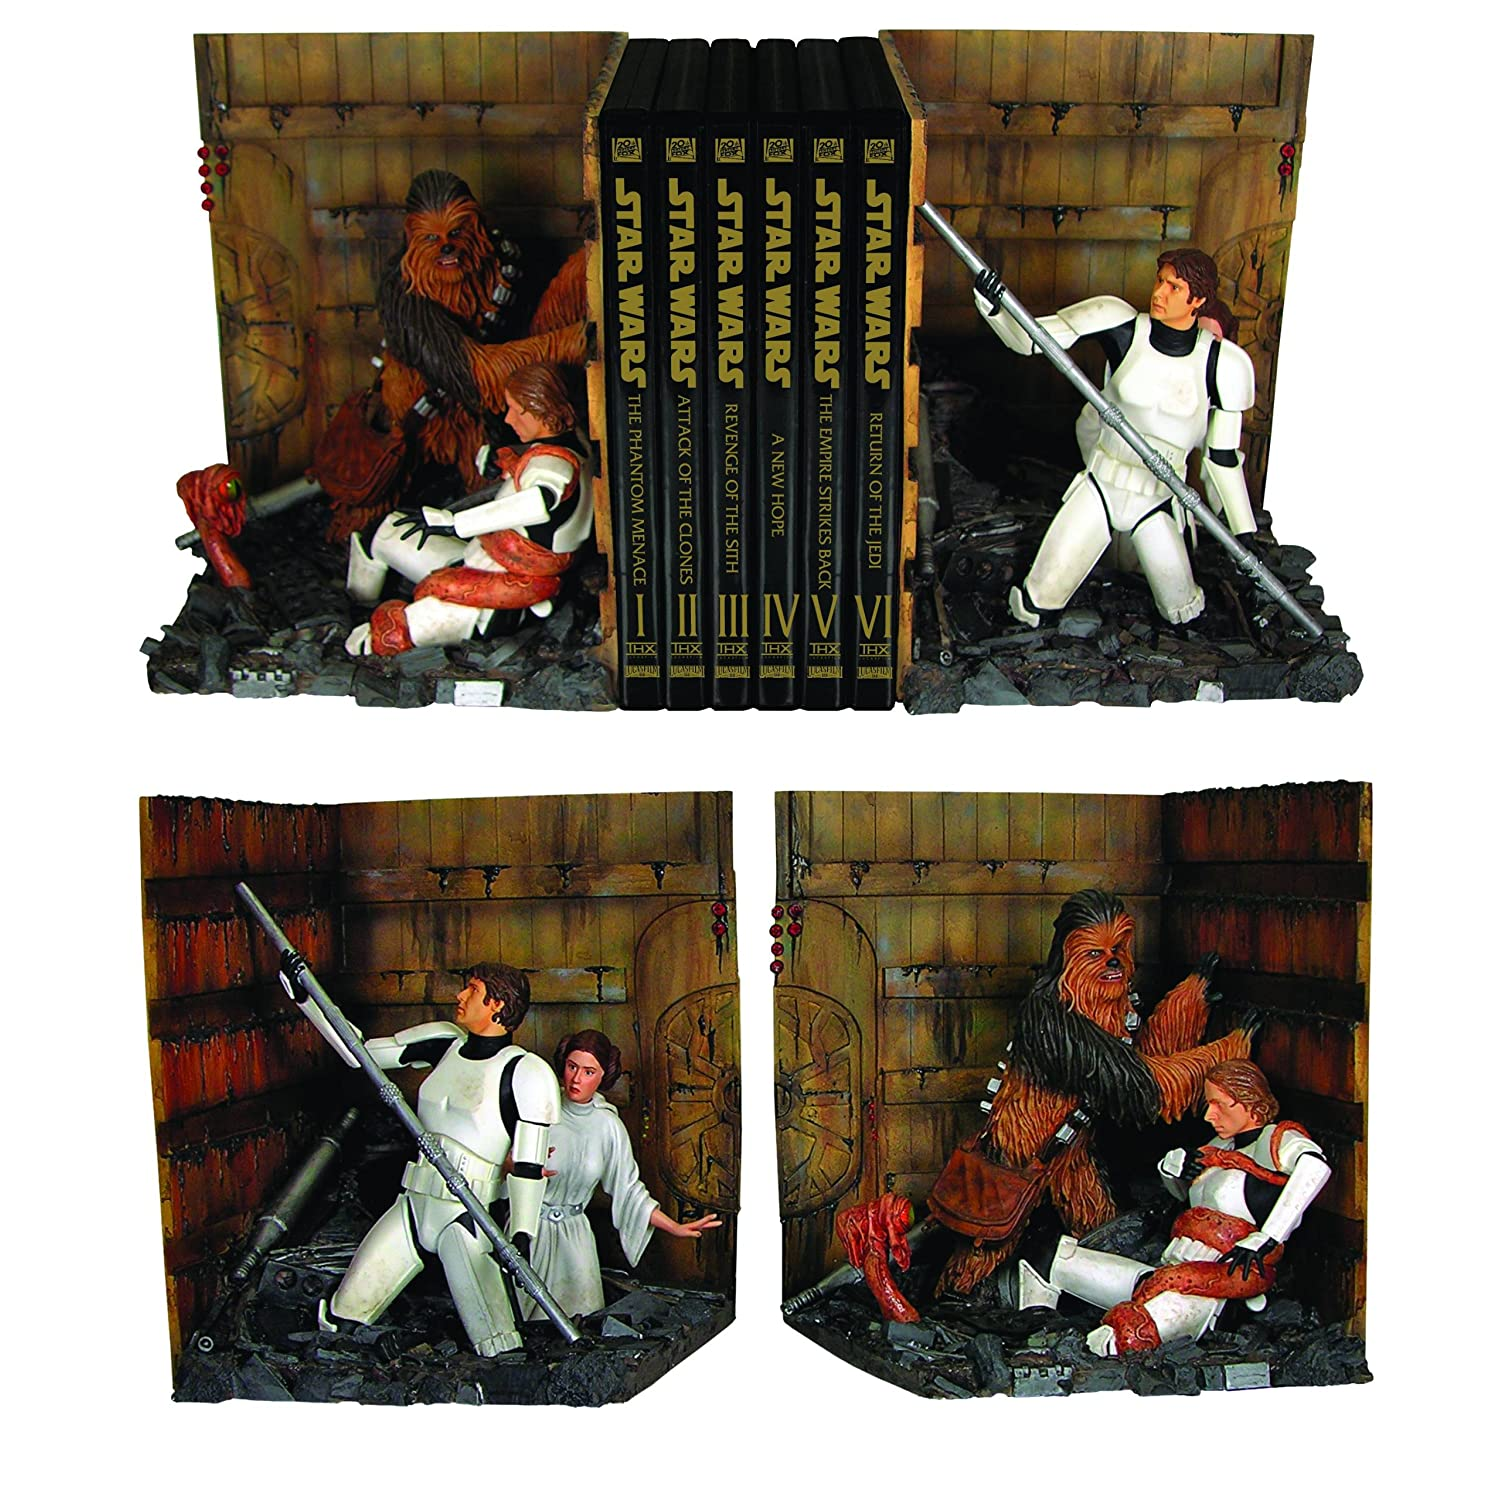 Star Wars: Trash Compactor Bookends